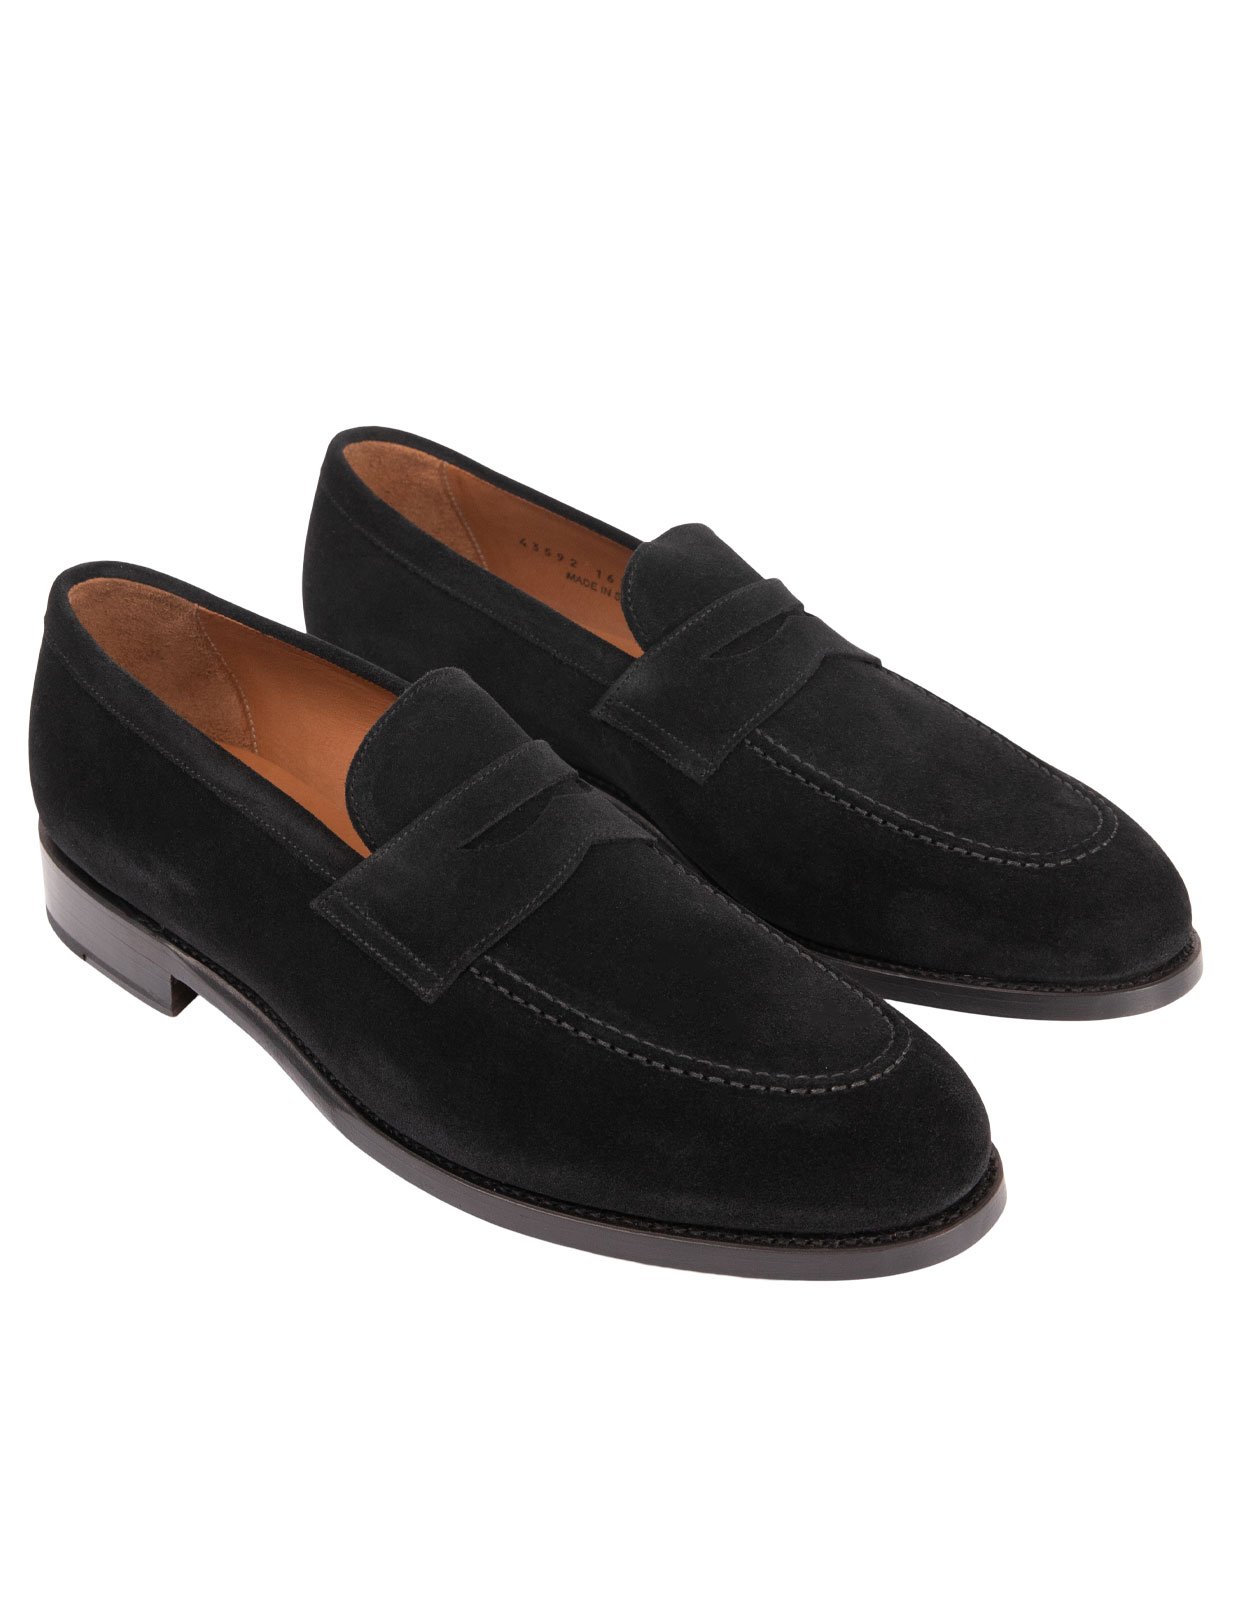 Penny Loafers Suede Black Stl 9.5